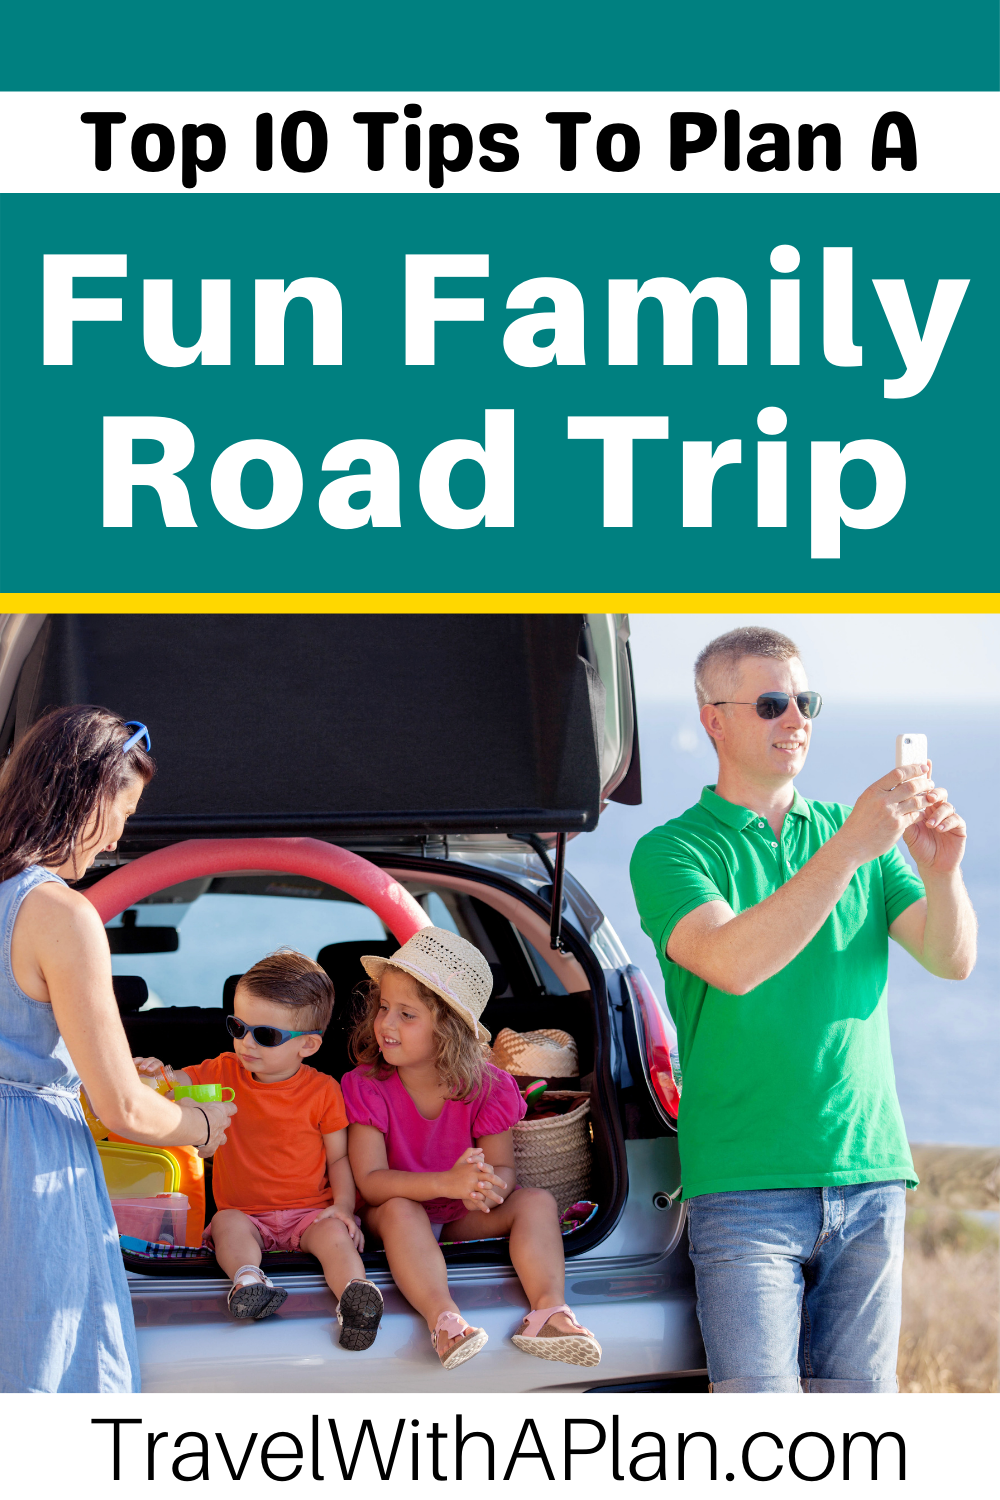 Click here for the top 10 professional tips for planning a family road trip from Top US Family Travel Blog, Travel With A Plan!  #roadtrip #familytravel